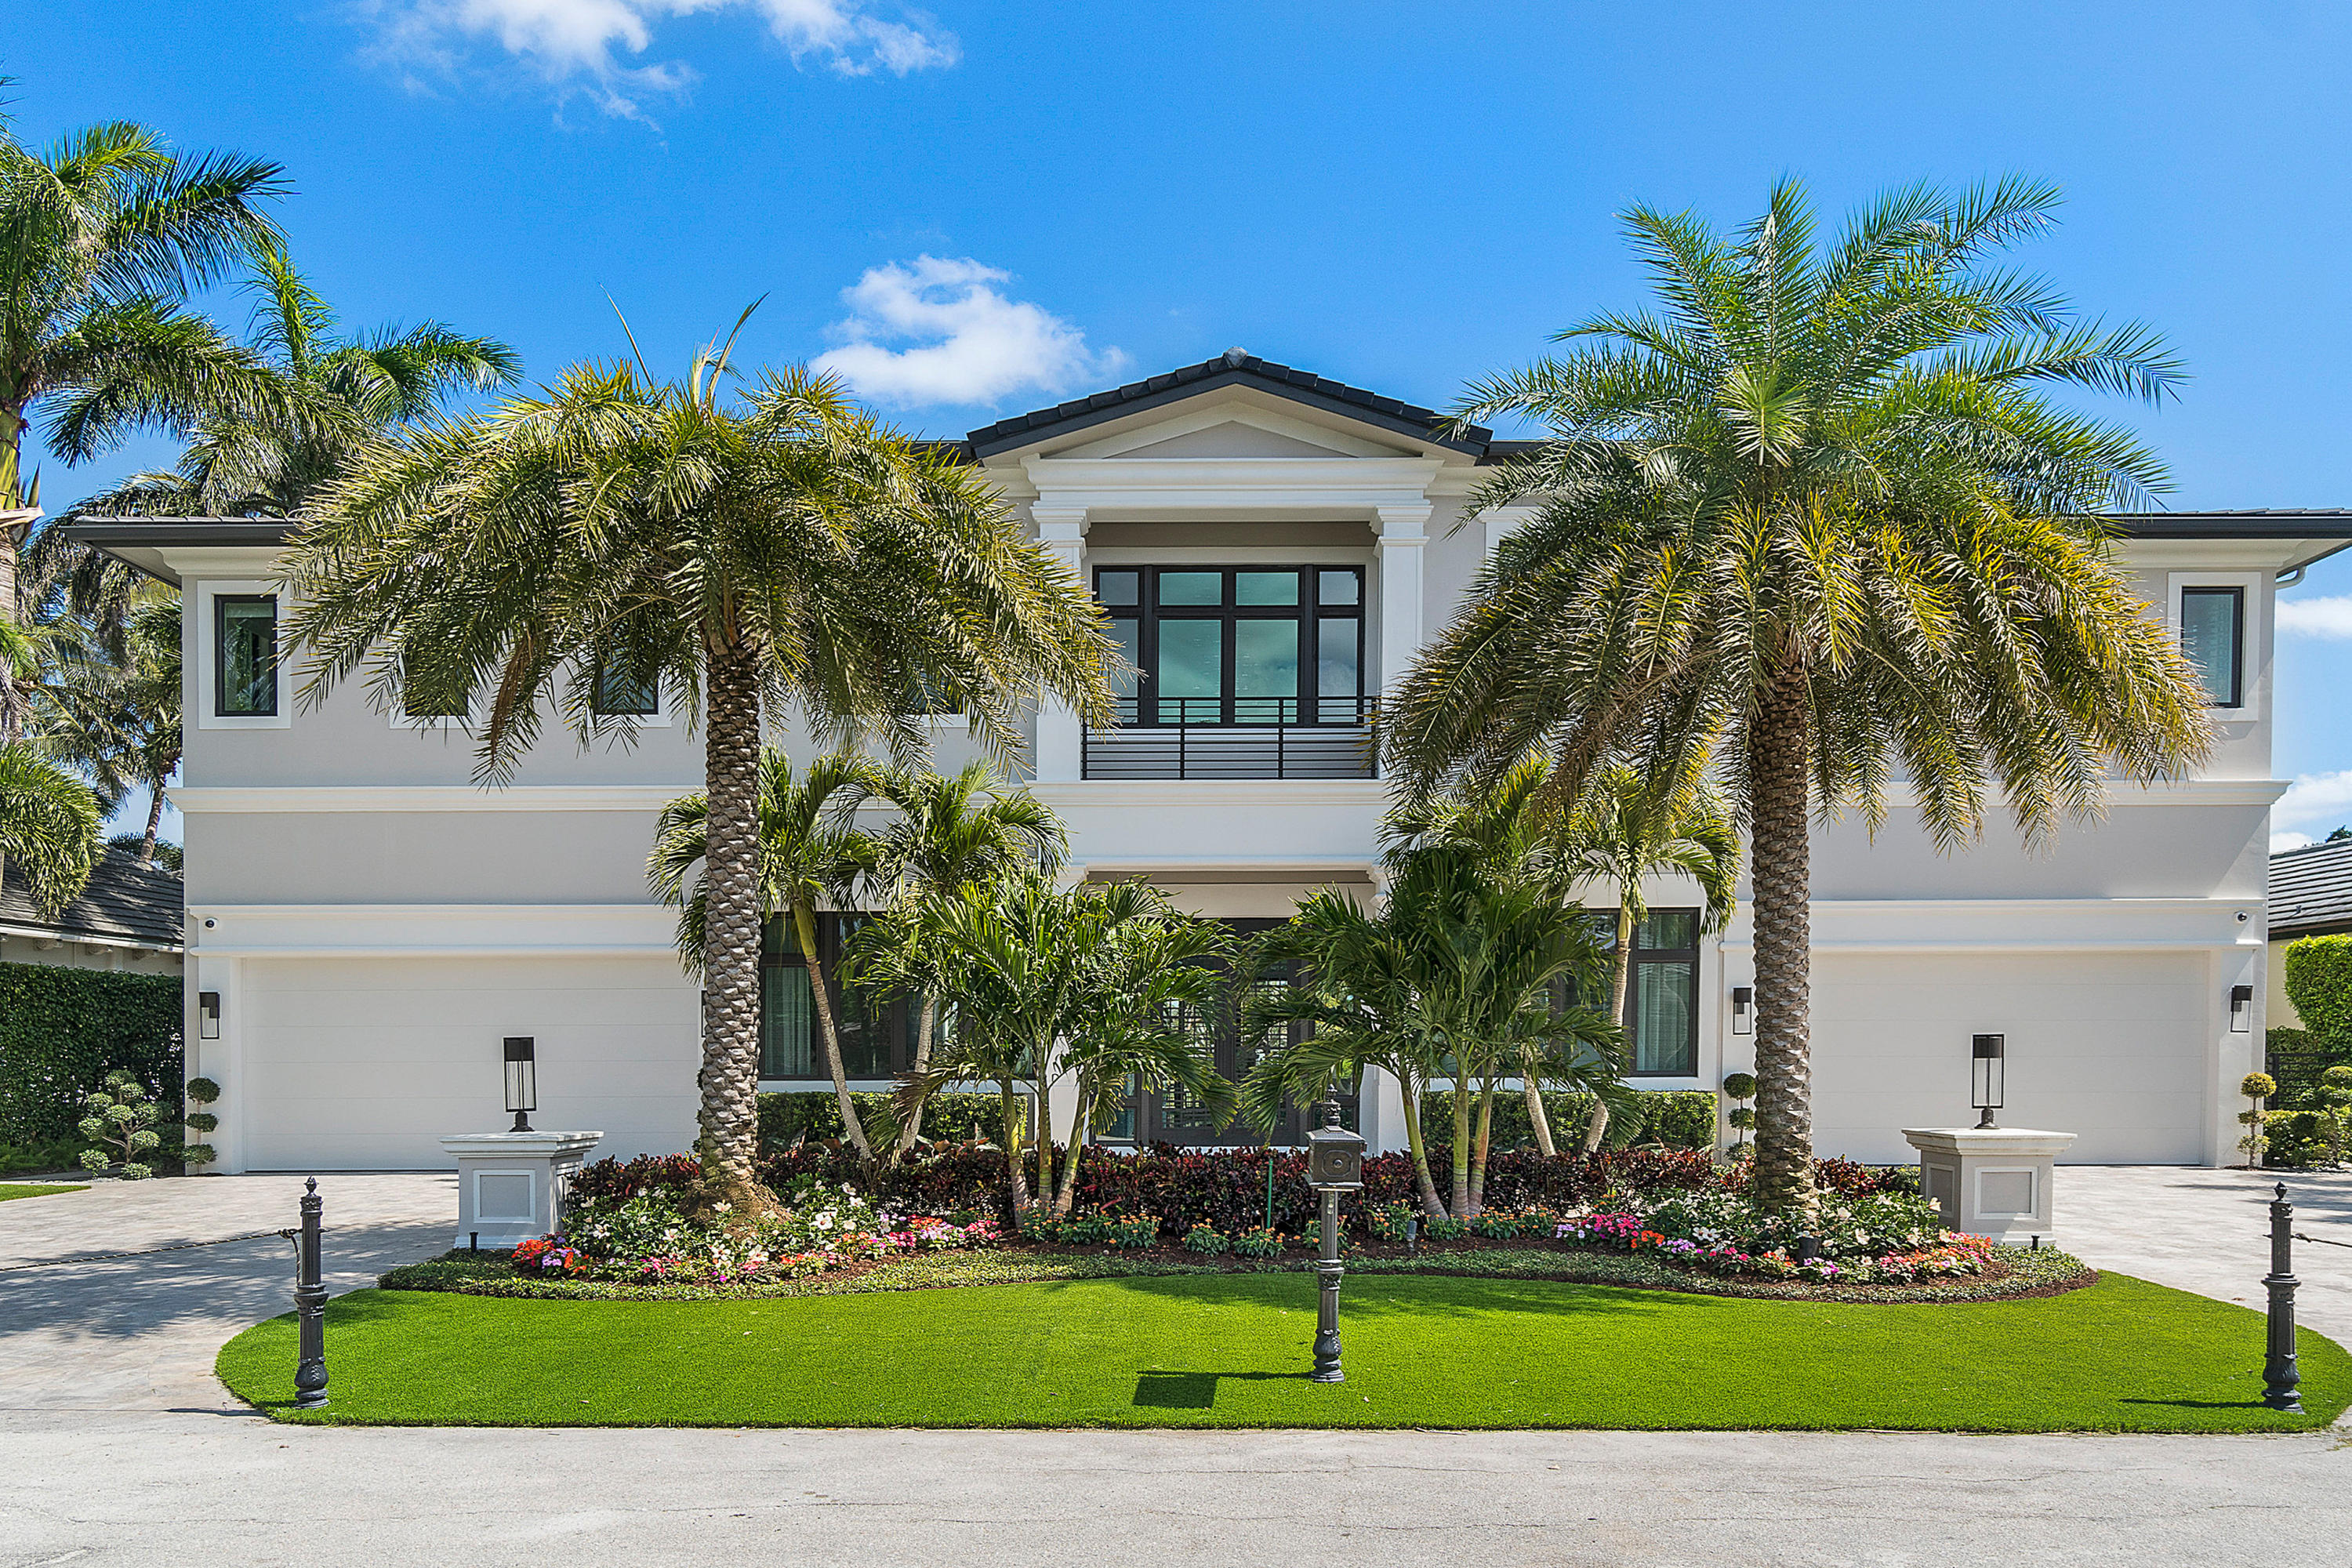 1744 Thatch Palm Drive, Boca Raton, Florida 33432, 5 Bedrooms Bedrooms, ,7.1 BathroomsBathrooms,Single Family,For Rent,ROYAL PALM YACHT & COUNTRY CLUB,Thatch Palm,1,RX-10495515